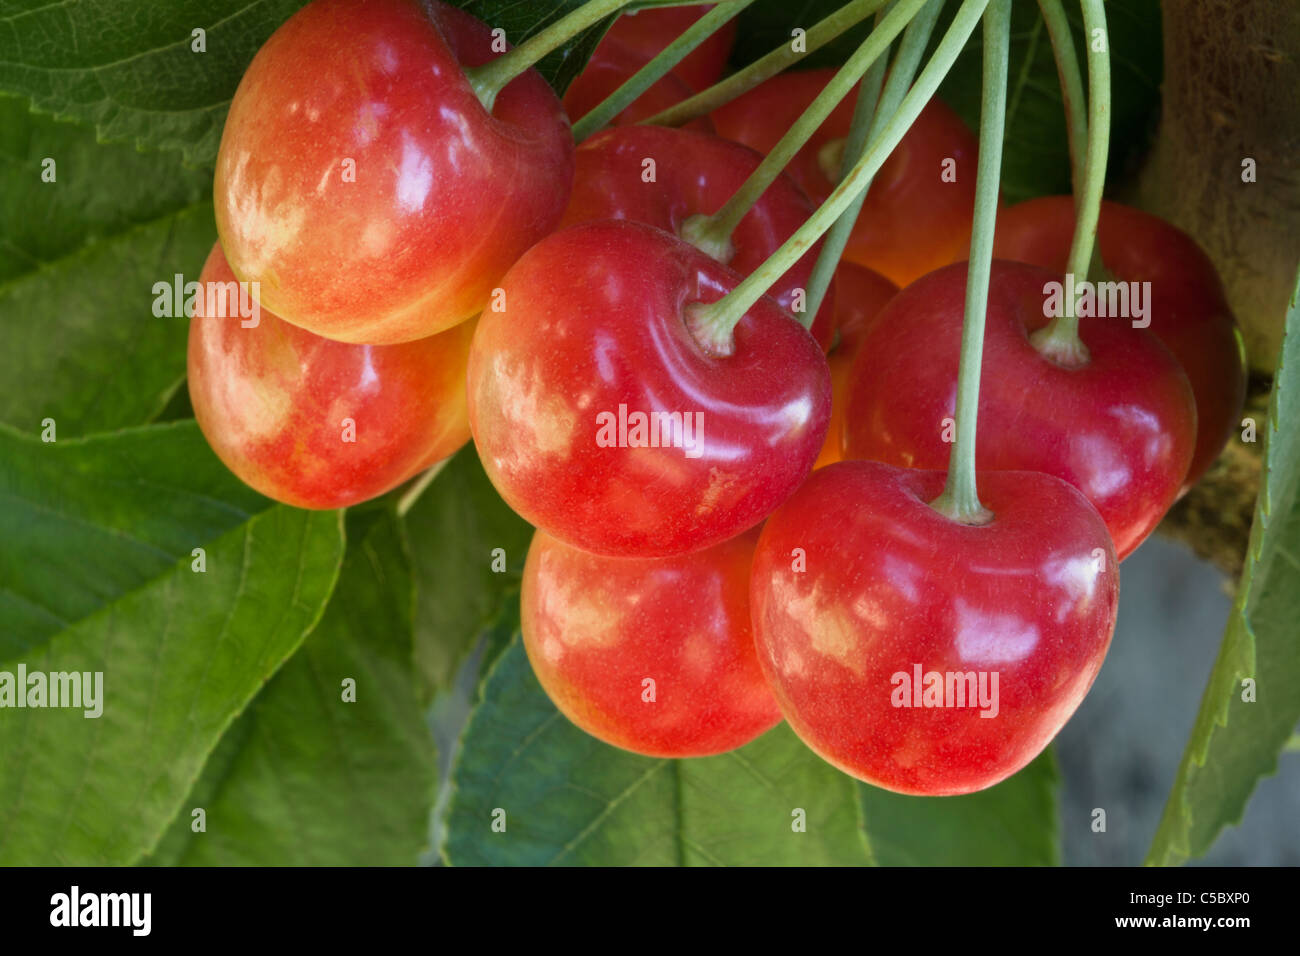 Cherries 'Rainier'  foliage, branch. - Stock Image